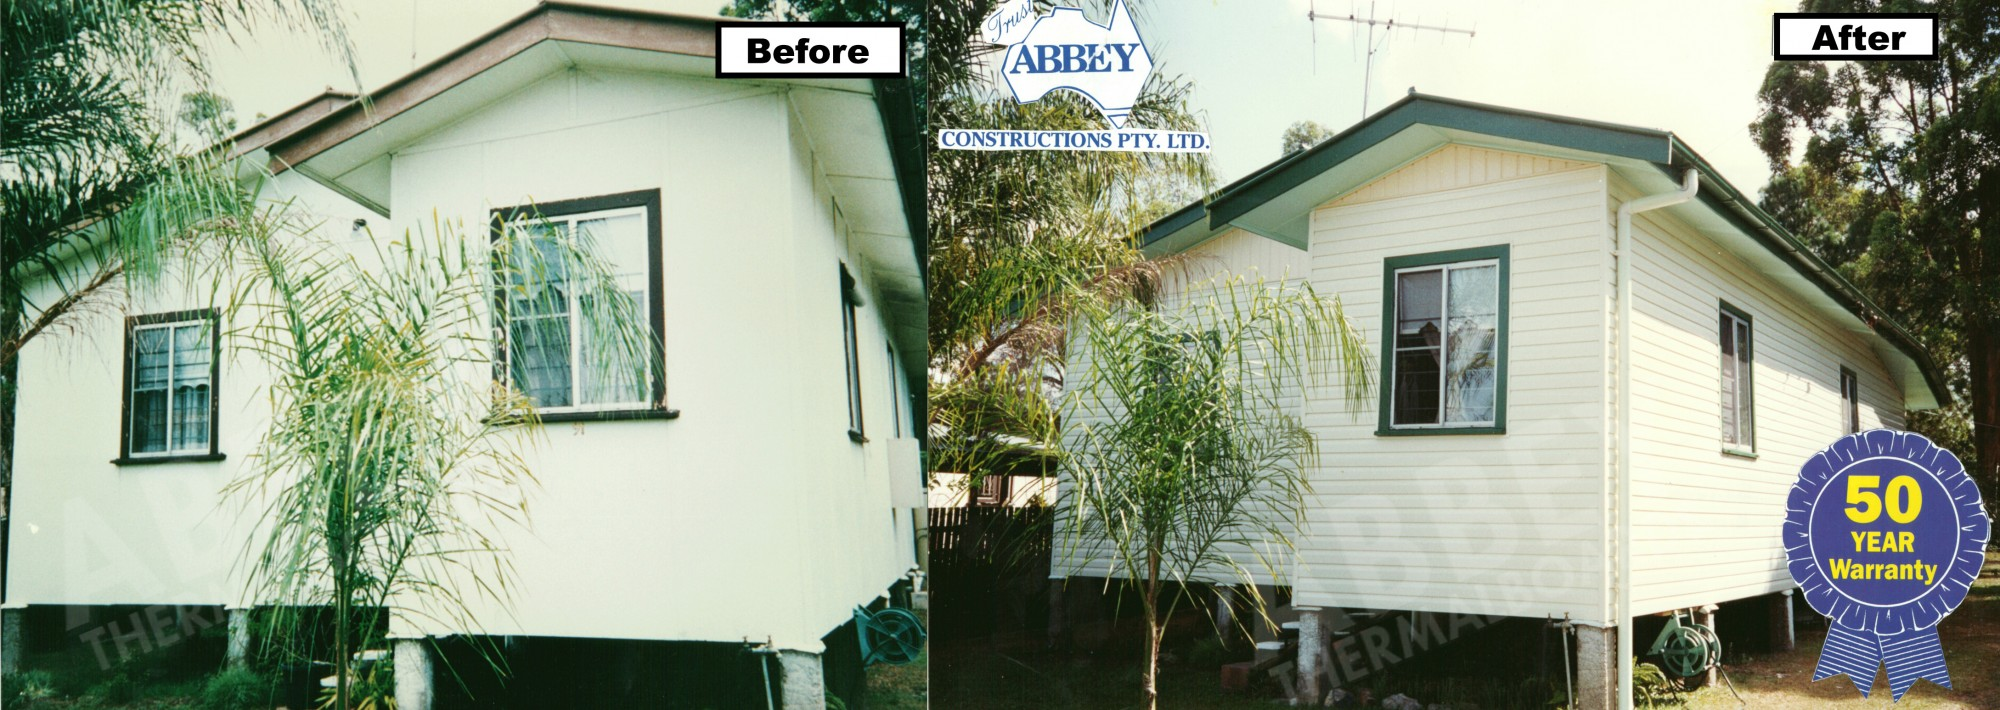 Completed house cladding with a 50 year warranty with Abbey.